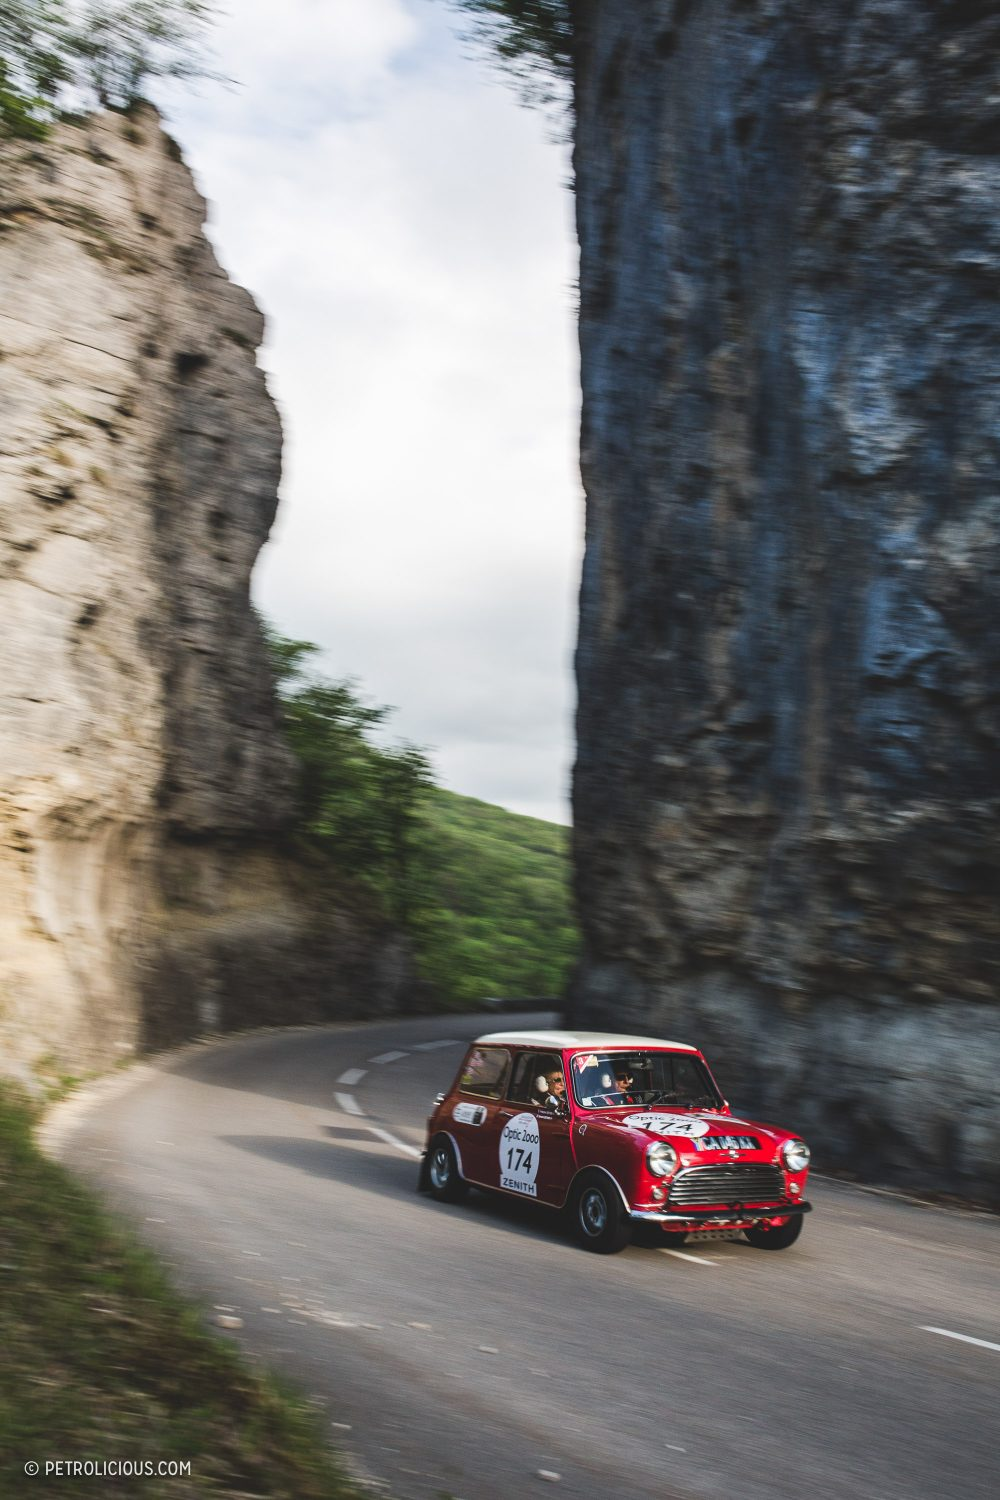 125 Photos Prove The Tour Auto Optic 2000 Is Ultimate European Rc Car Circuit Finalstage 230 Classic Cars In Participation 10 Special Stages And Four Bonafide Racing Circuits Enough To Sound Like One Of Best Road Trips World